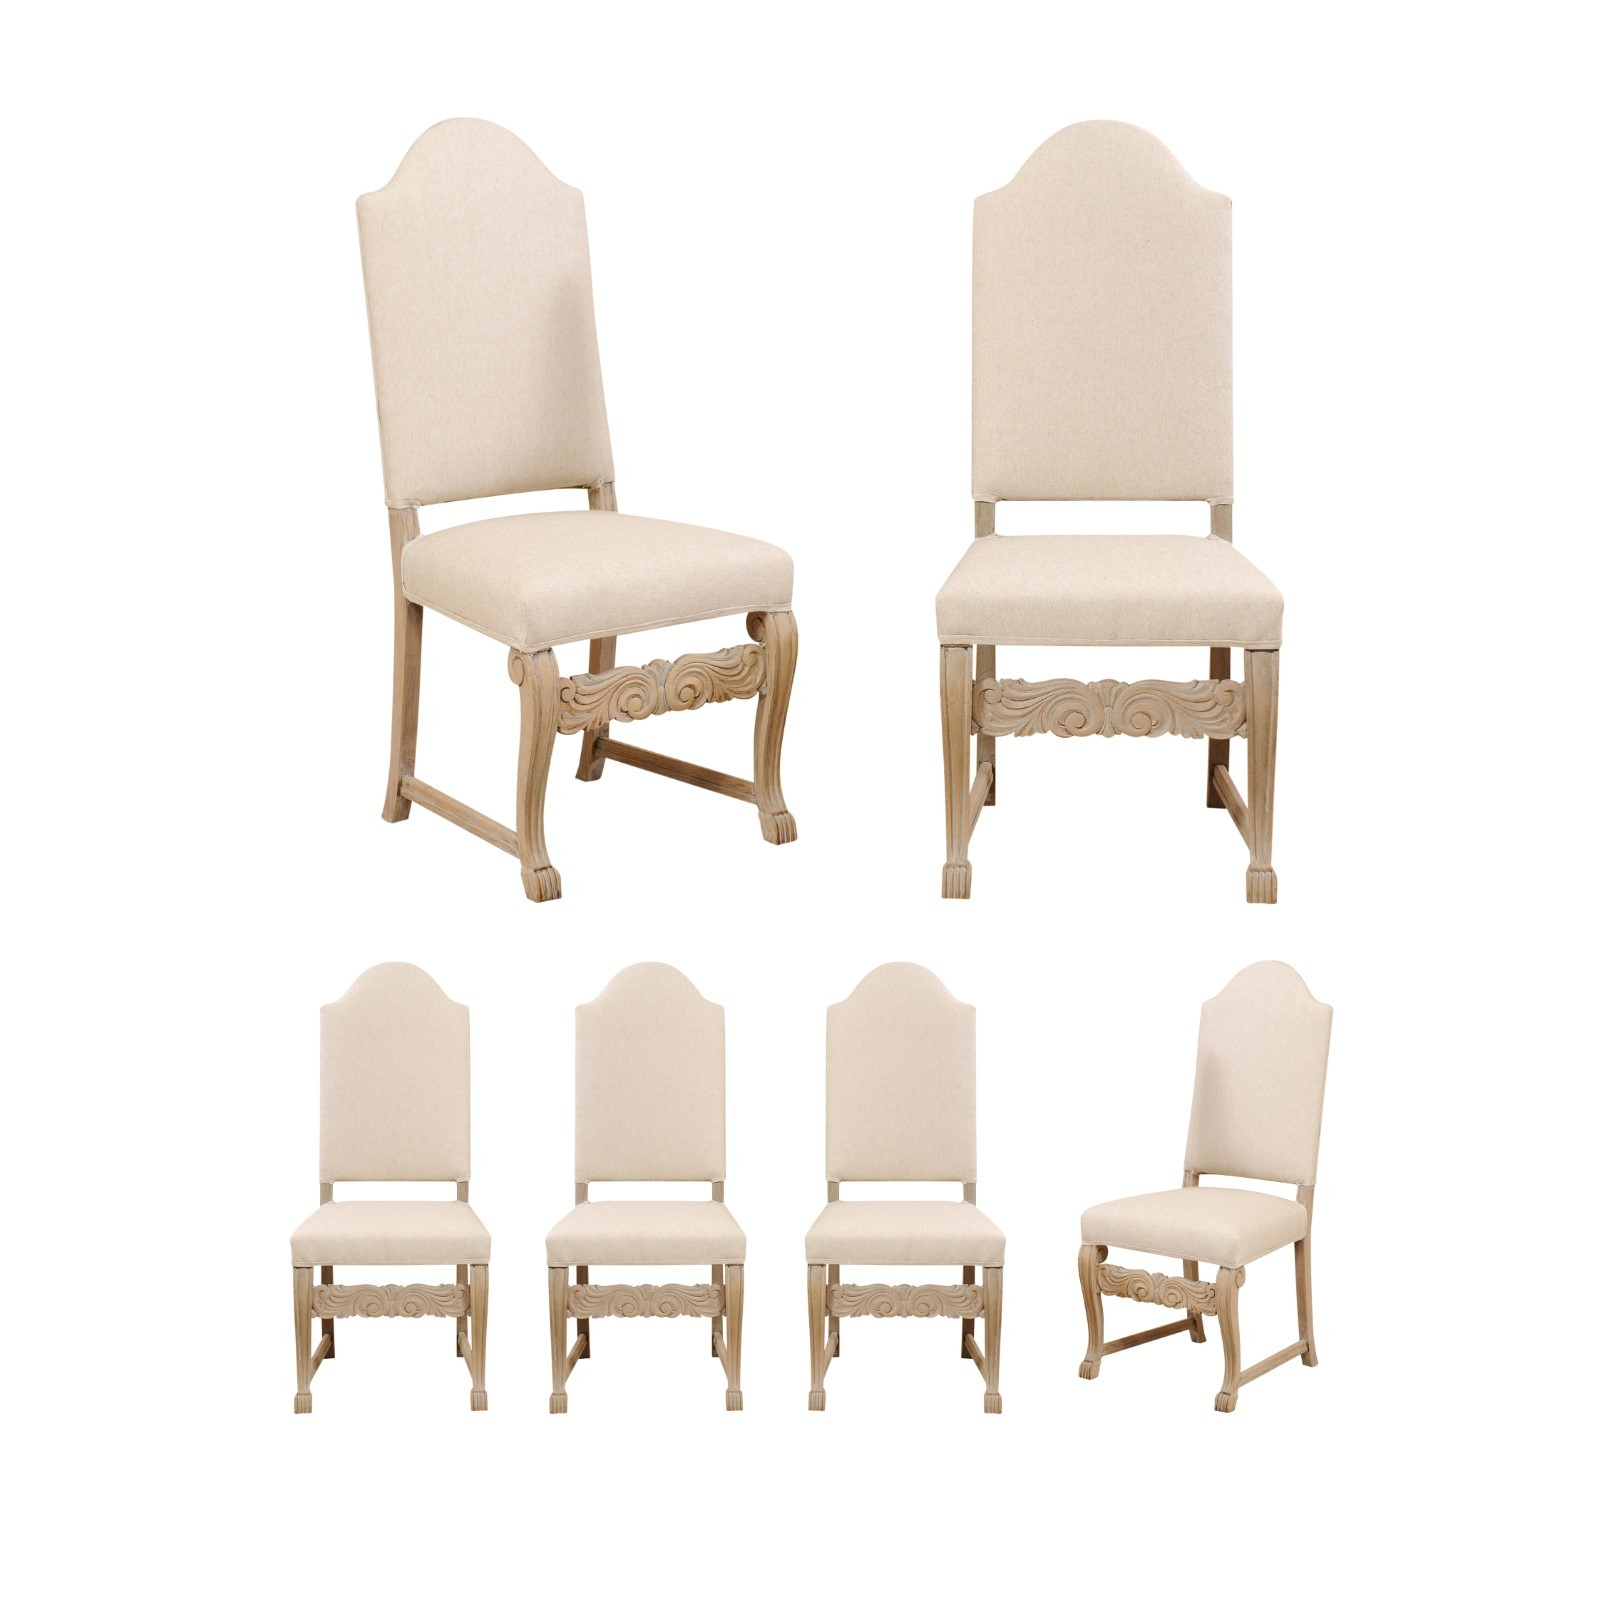 Set of 6 Swedish Upholstered Side Chairs